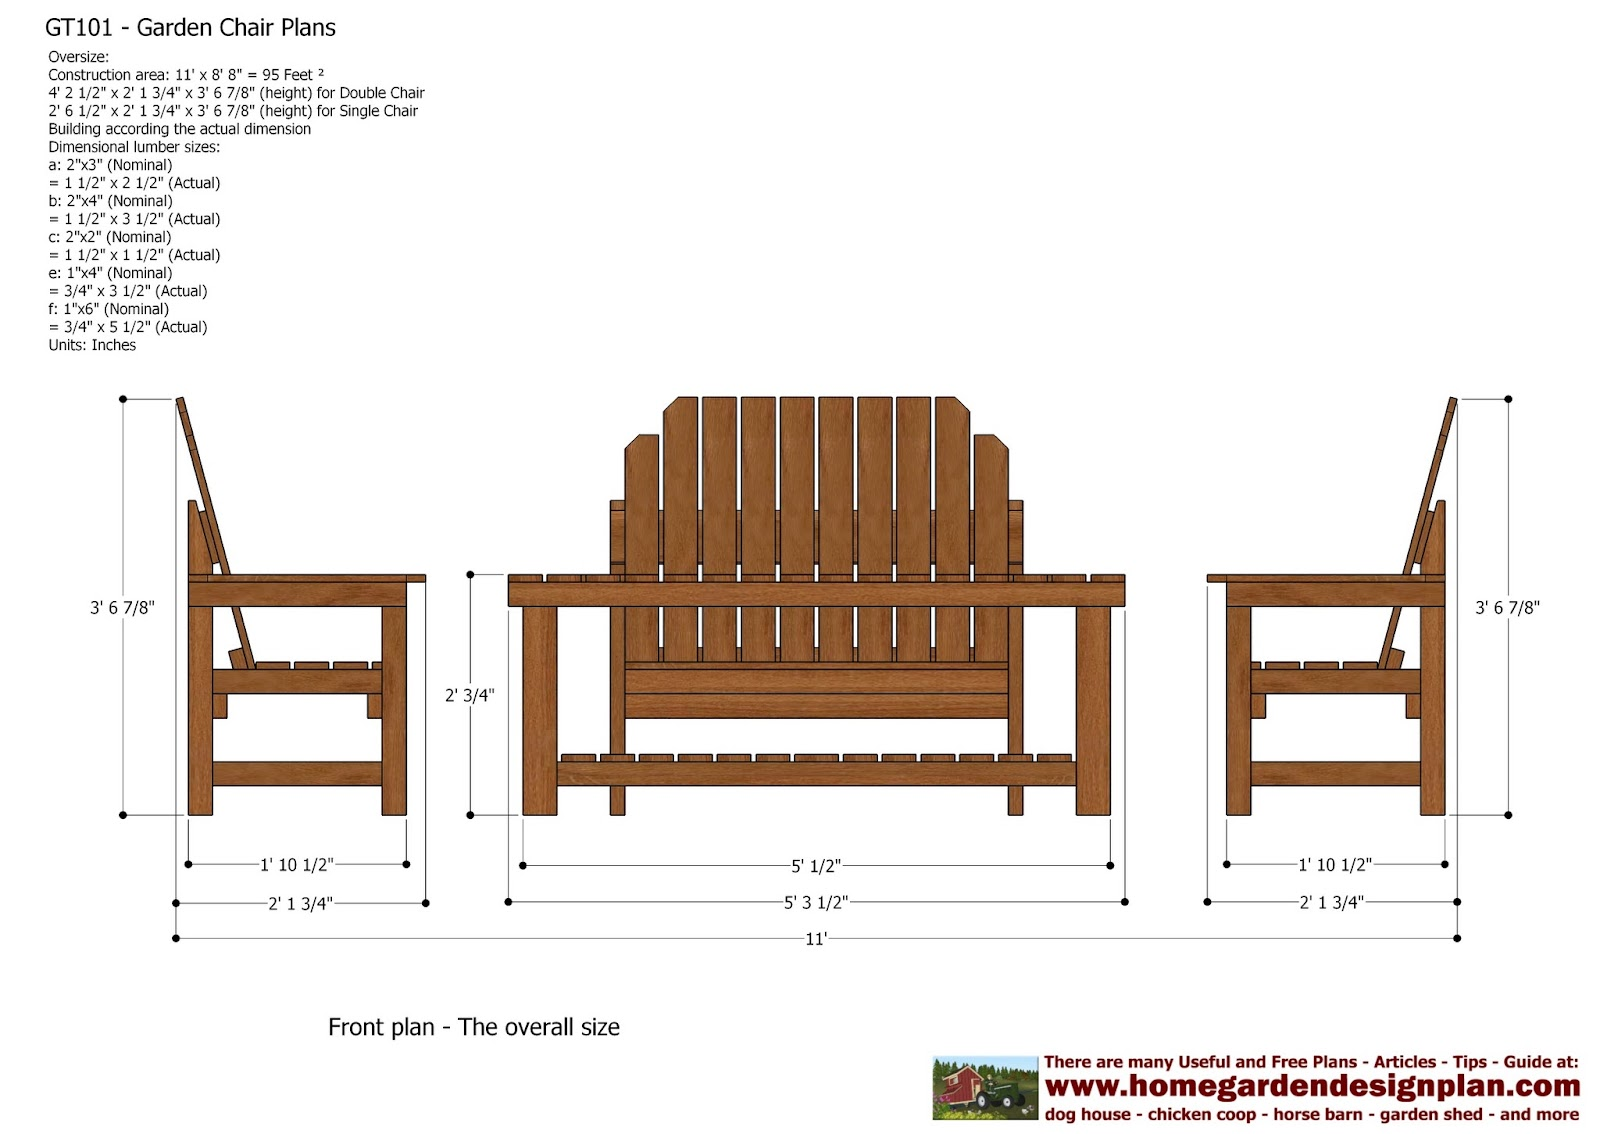 Home garden plans gt101 garden teak table plans out for Homegardendesignplan